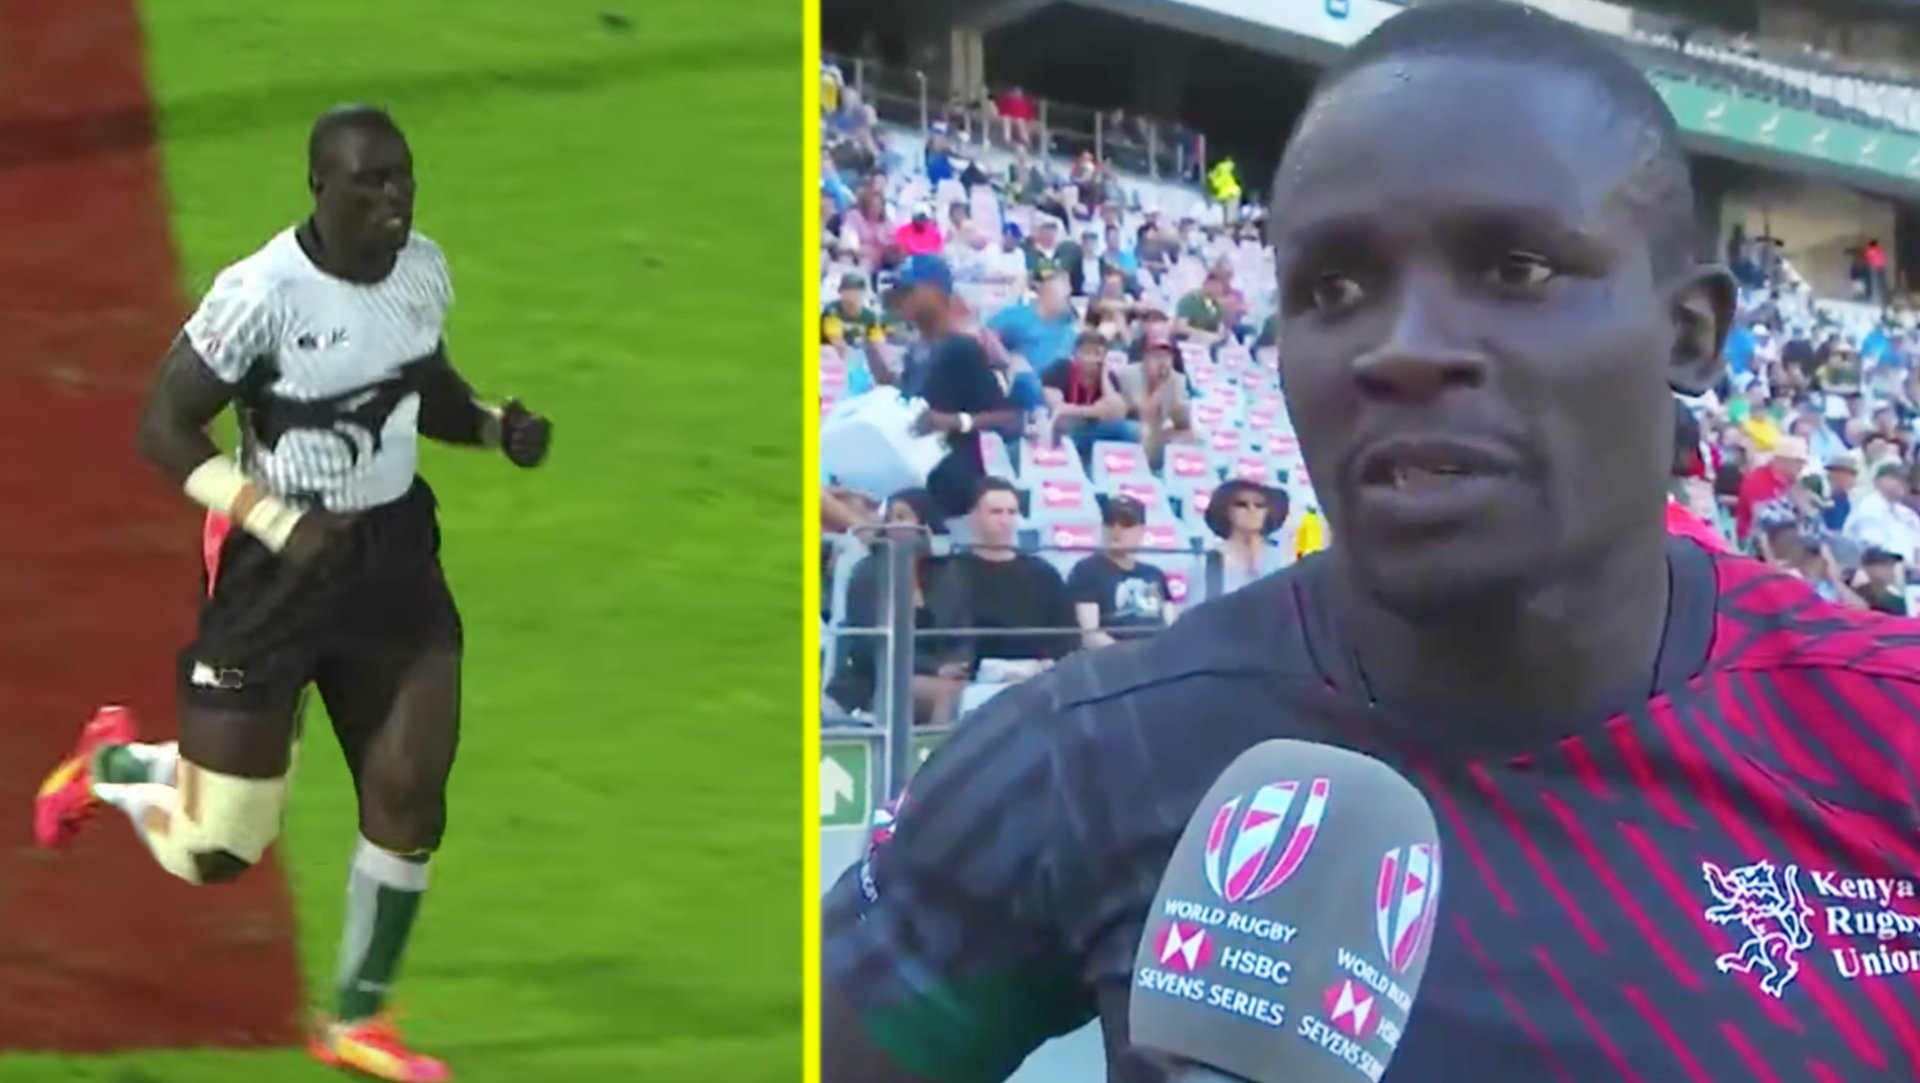 The Kenyan sevens team this year is absolutely MASSIVE and people are raving about it